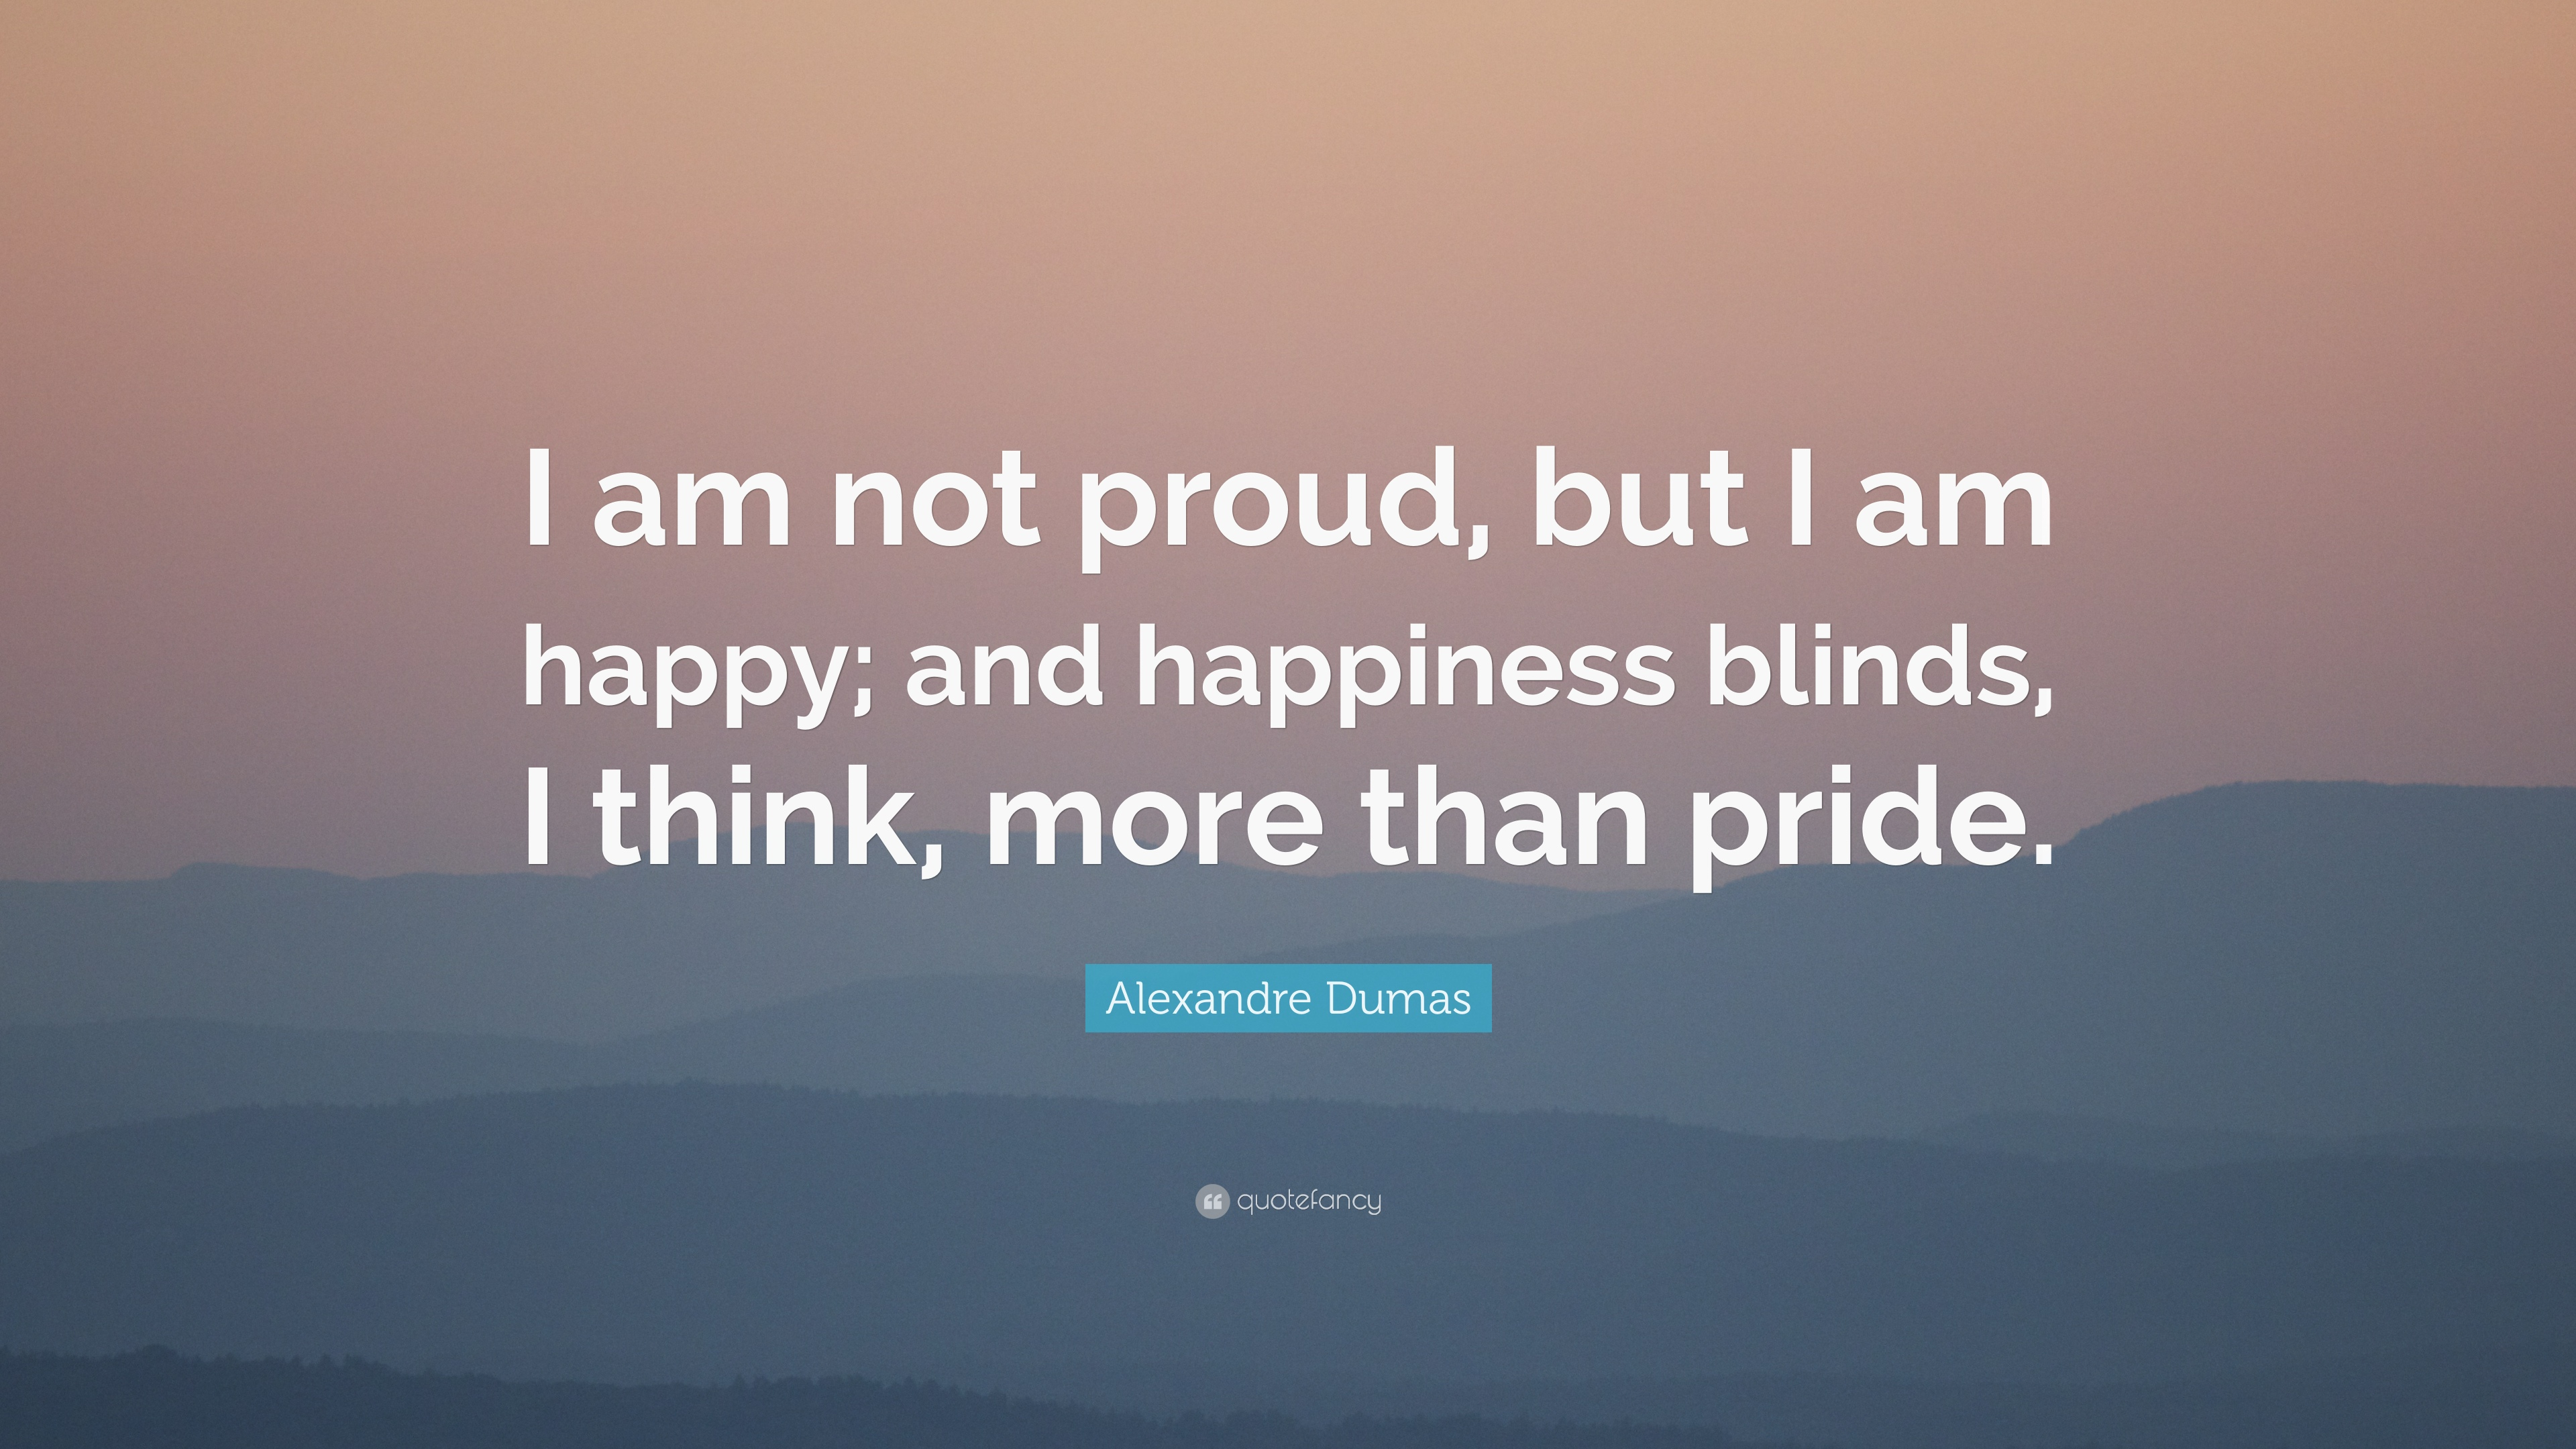 Alexandre Dumas Quote: U201cI Am Not Proud, But I Am Happy; And